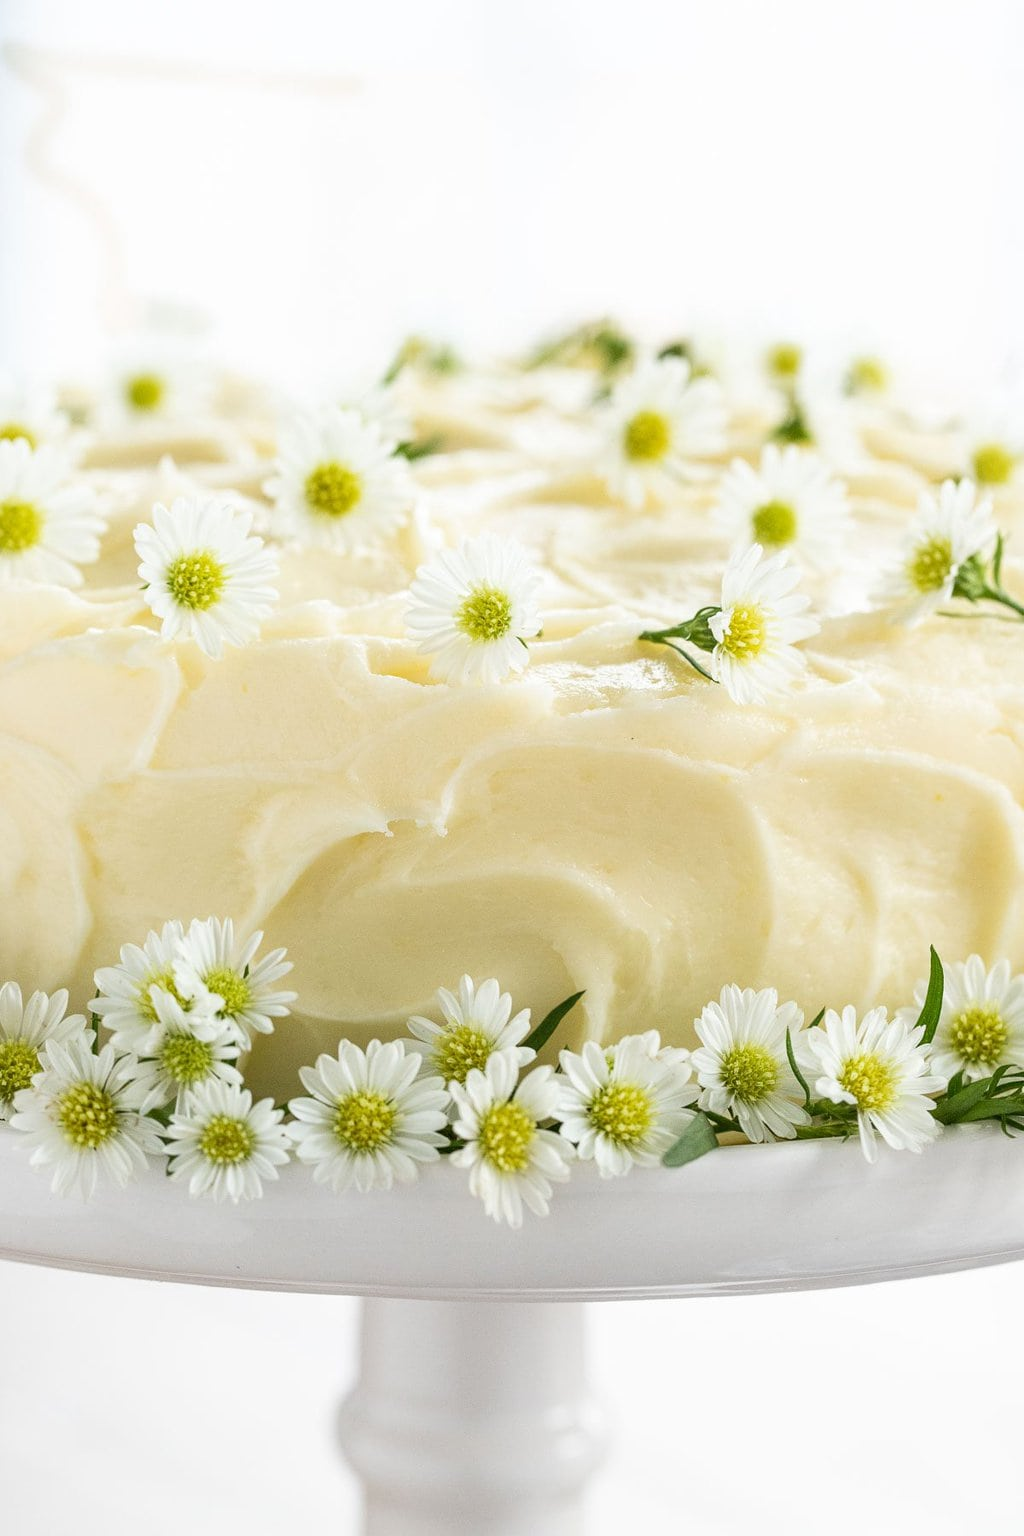 Ultra closeup of a Lemon Curd Poppy Seed Cake decorated with edible spring flowers.